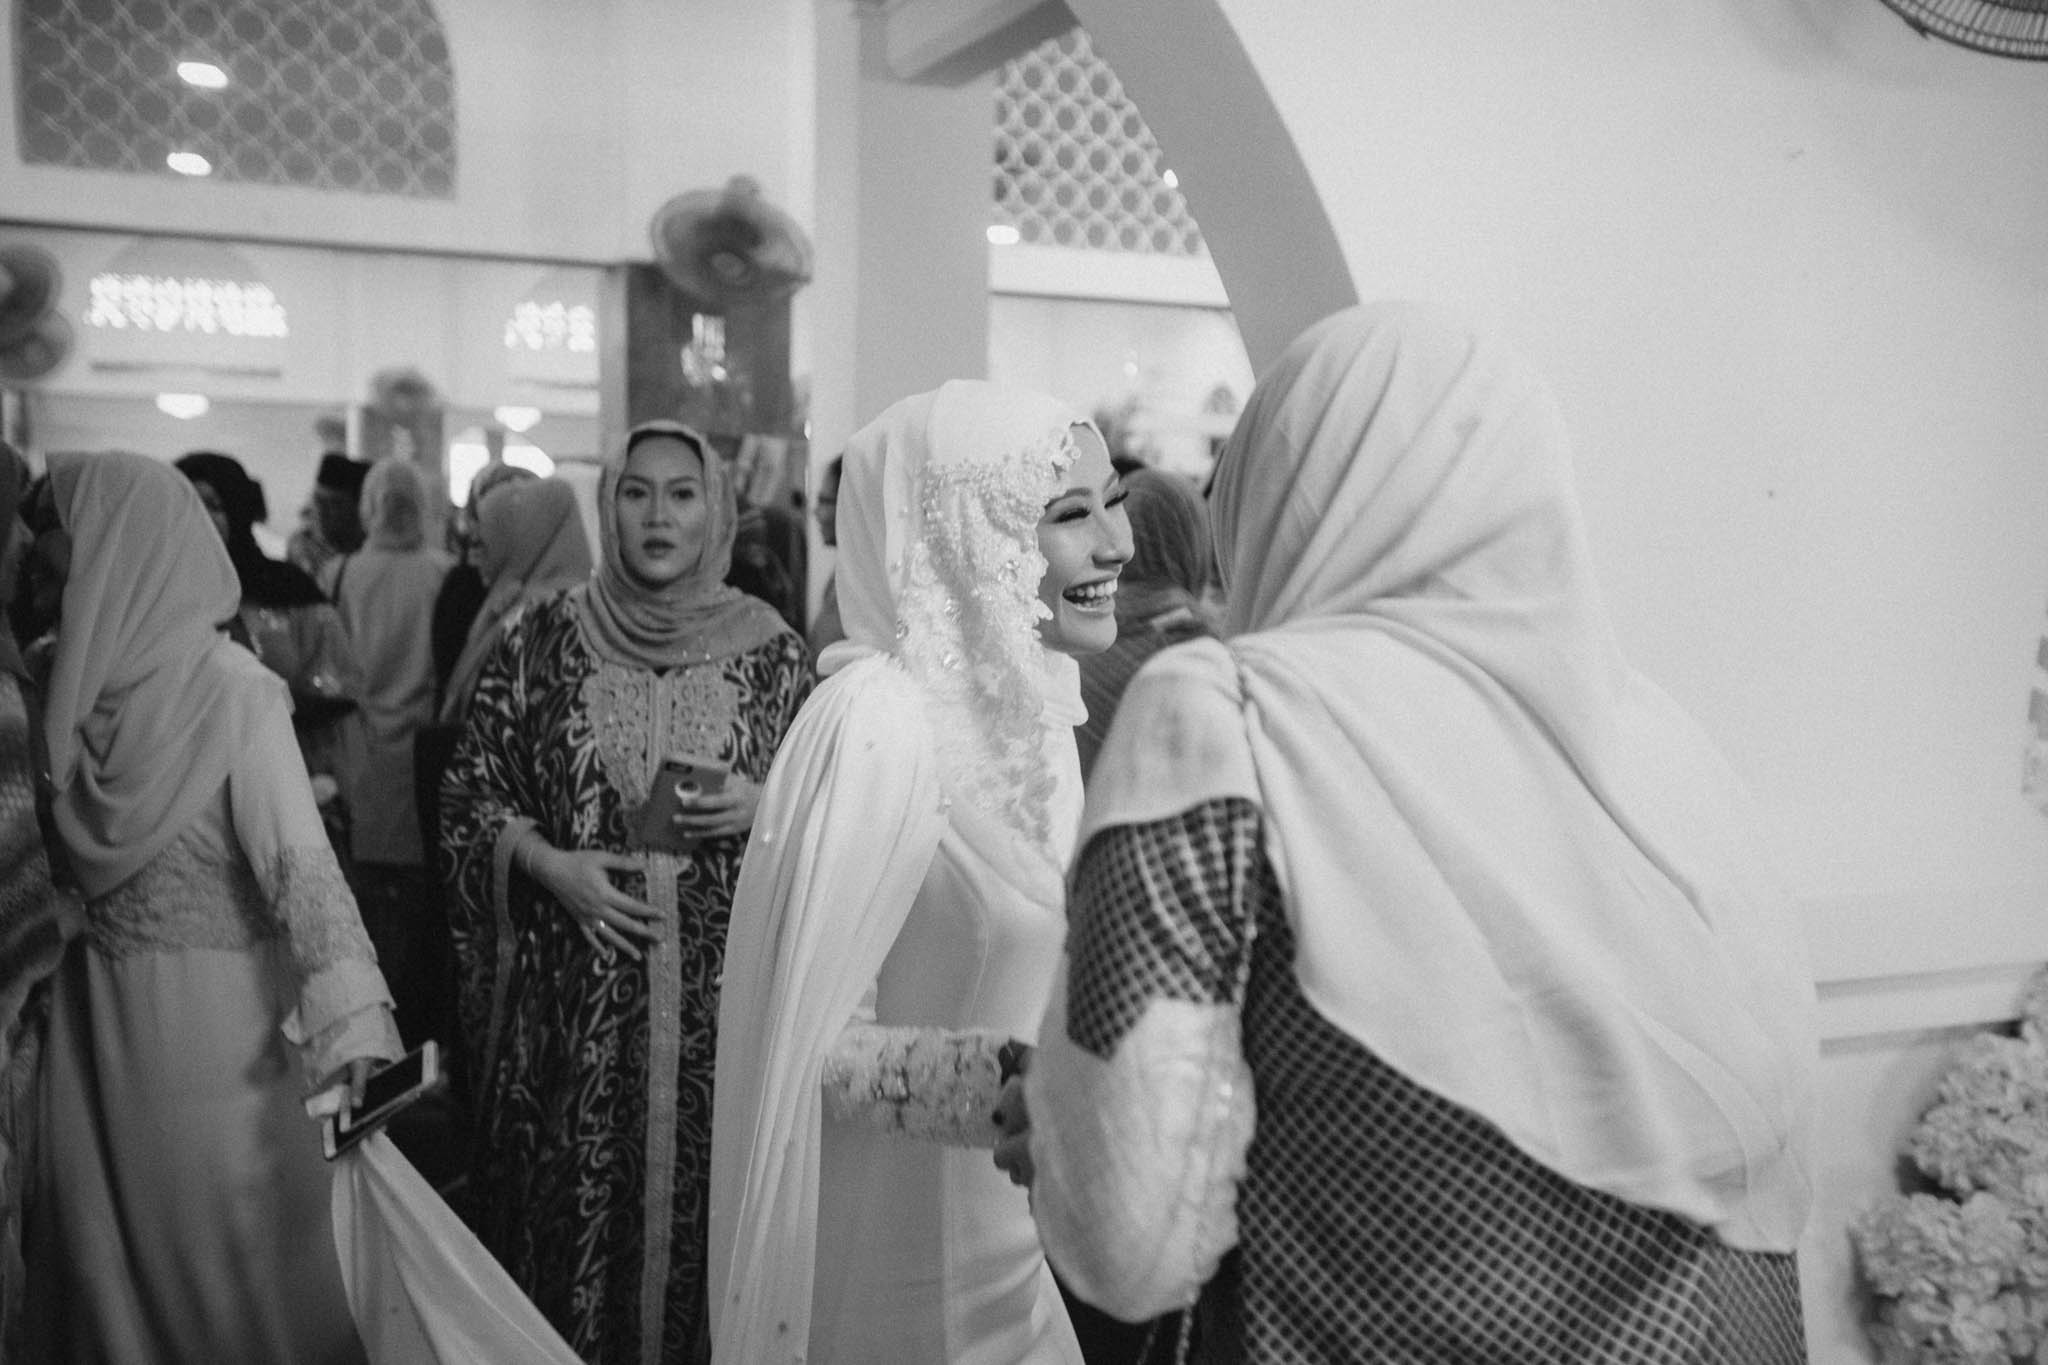 singapore-wedding-photographer-sarah-razif-33.jpg